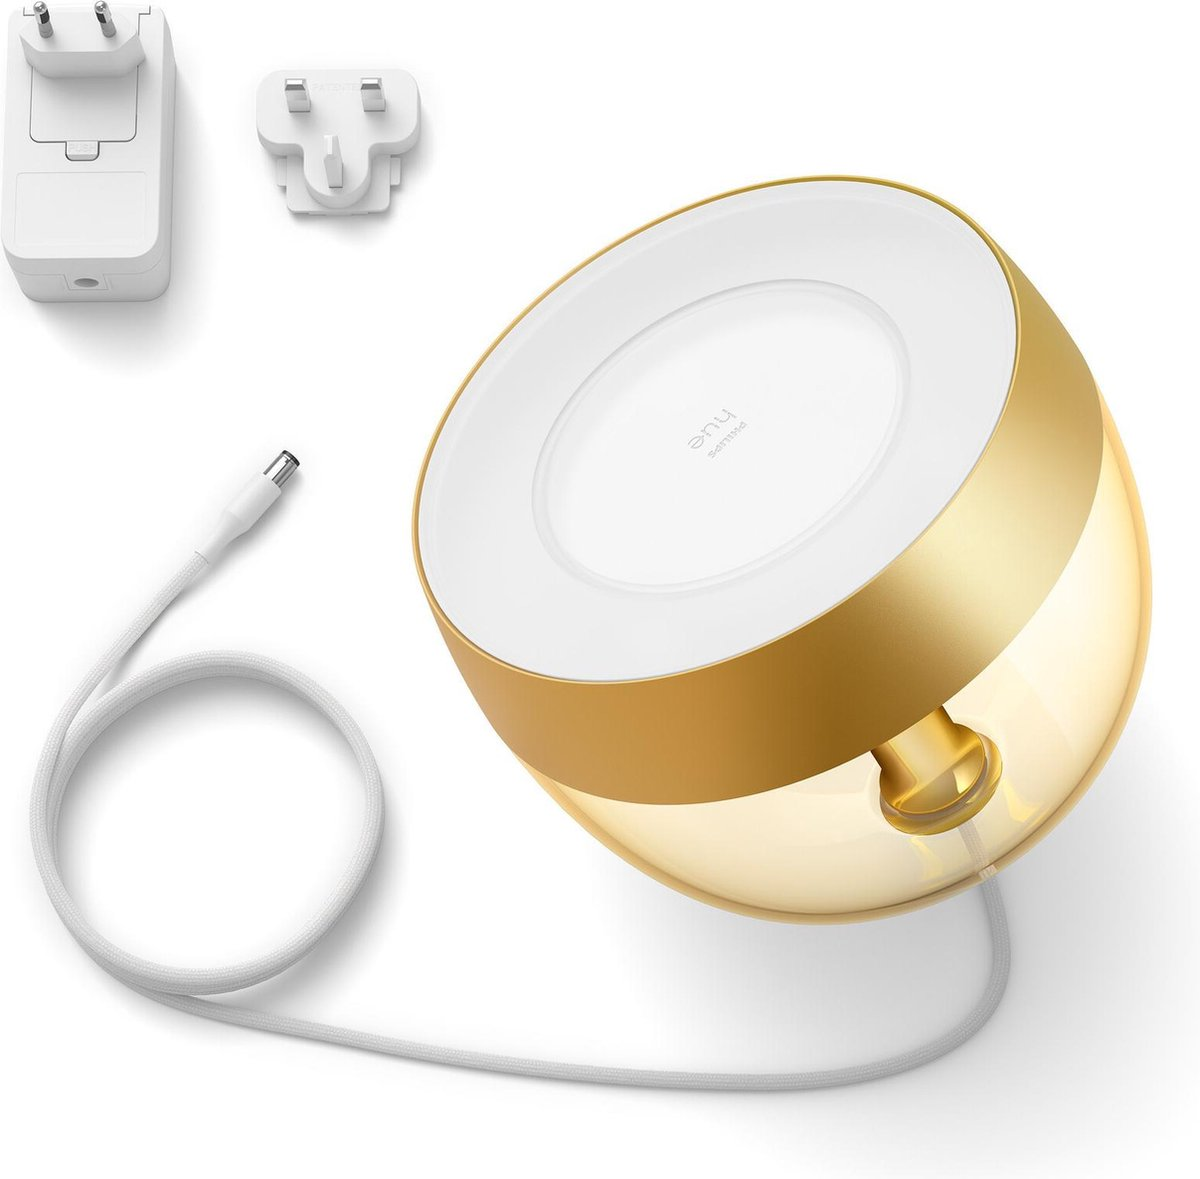 Philips Hue Iris Tafellamp - White and Color Ambiance - Gëintegreerd LED - Goud - 8,1W - Bluetooth - Limited Edition